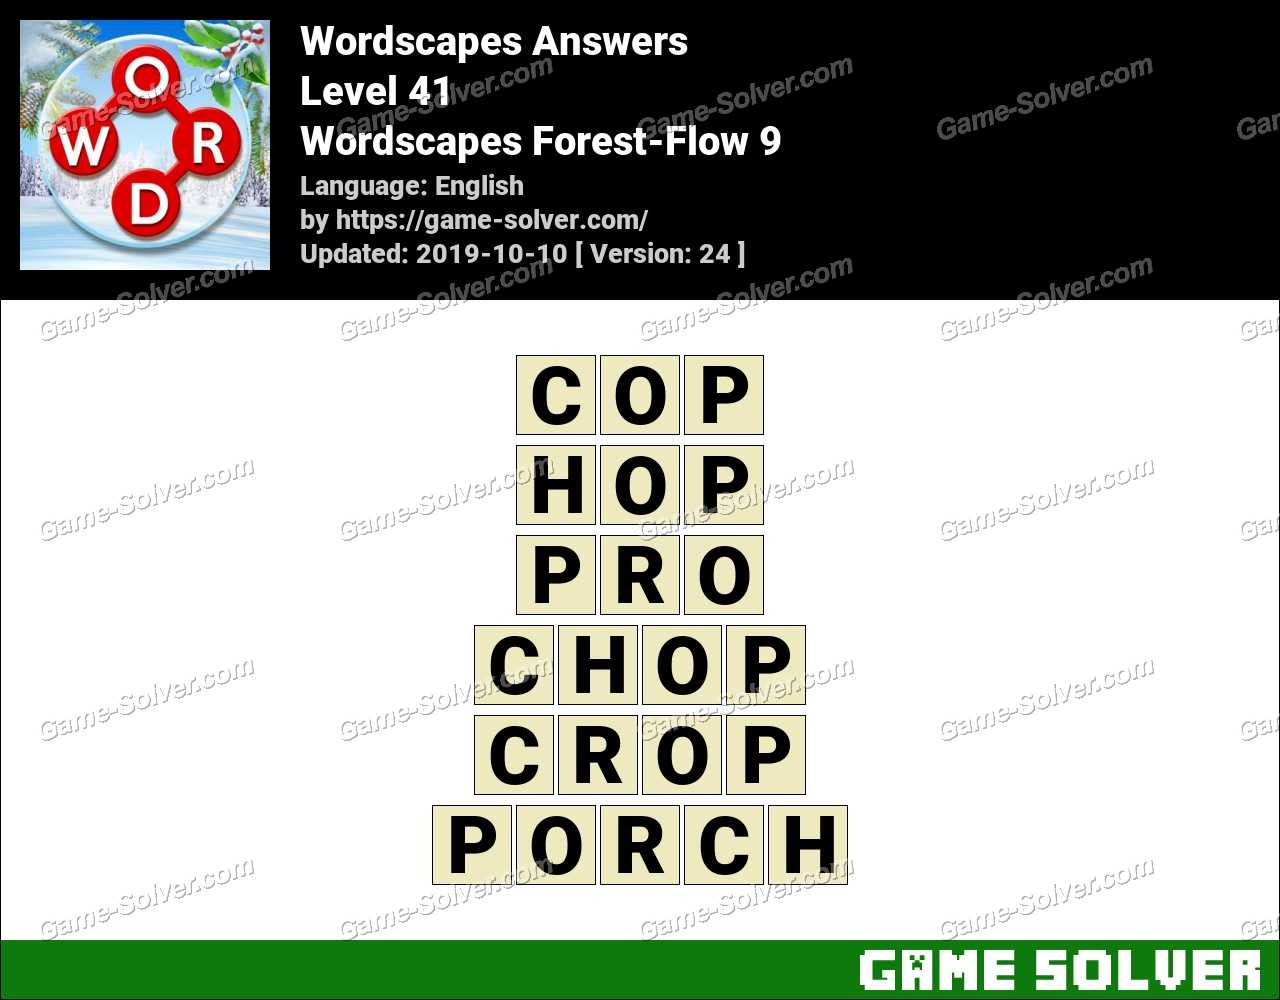 Wordscapes Forest-Flow 9 Answers